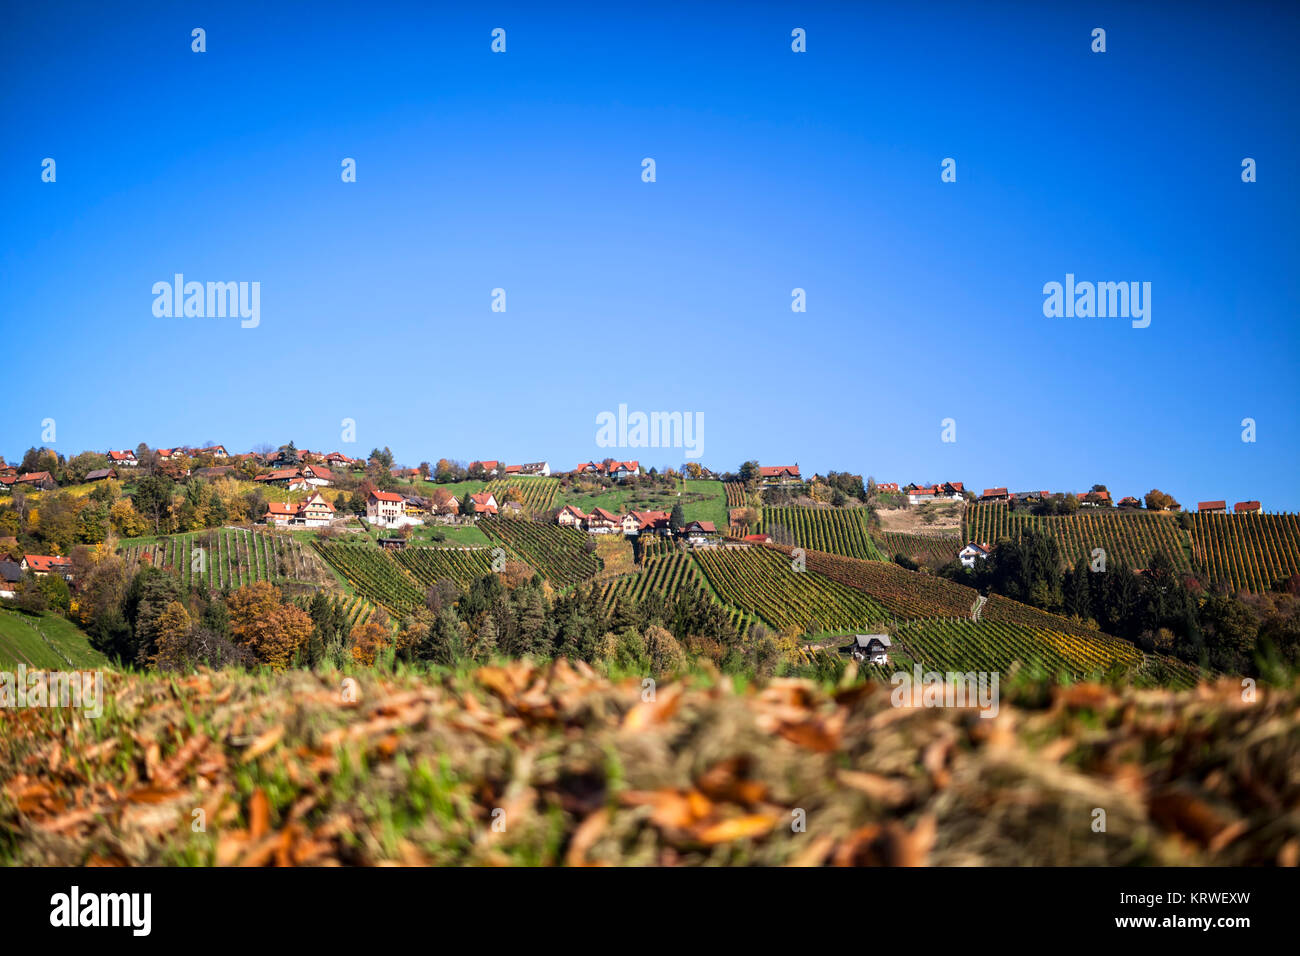 Vineyard on Schilcher wine route with some traditional old huts in western Styria, Austria - Stock Image